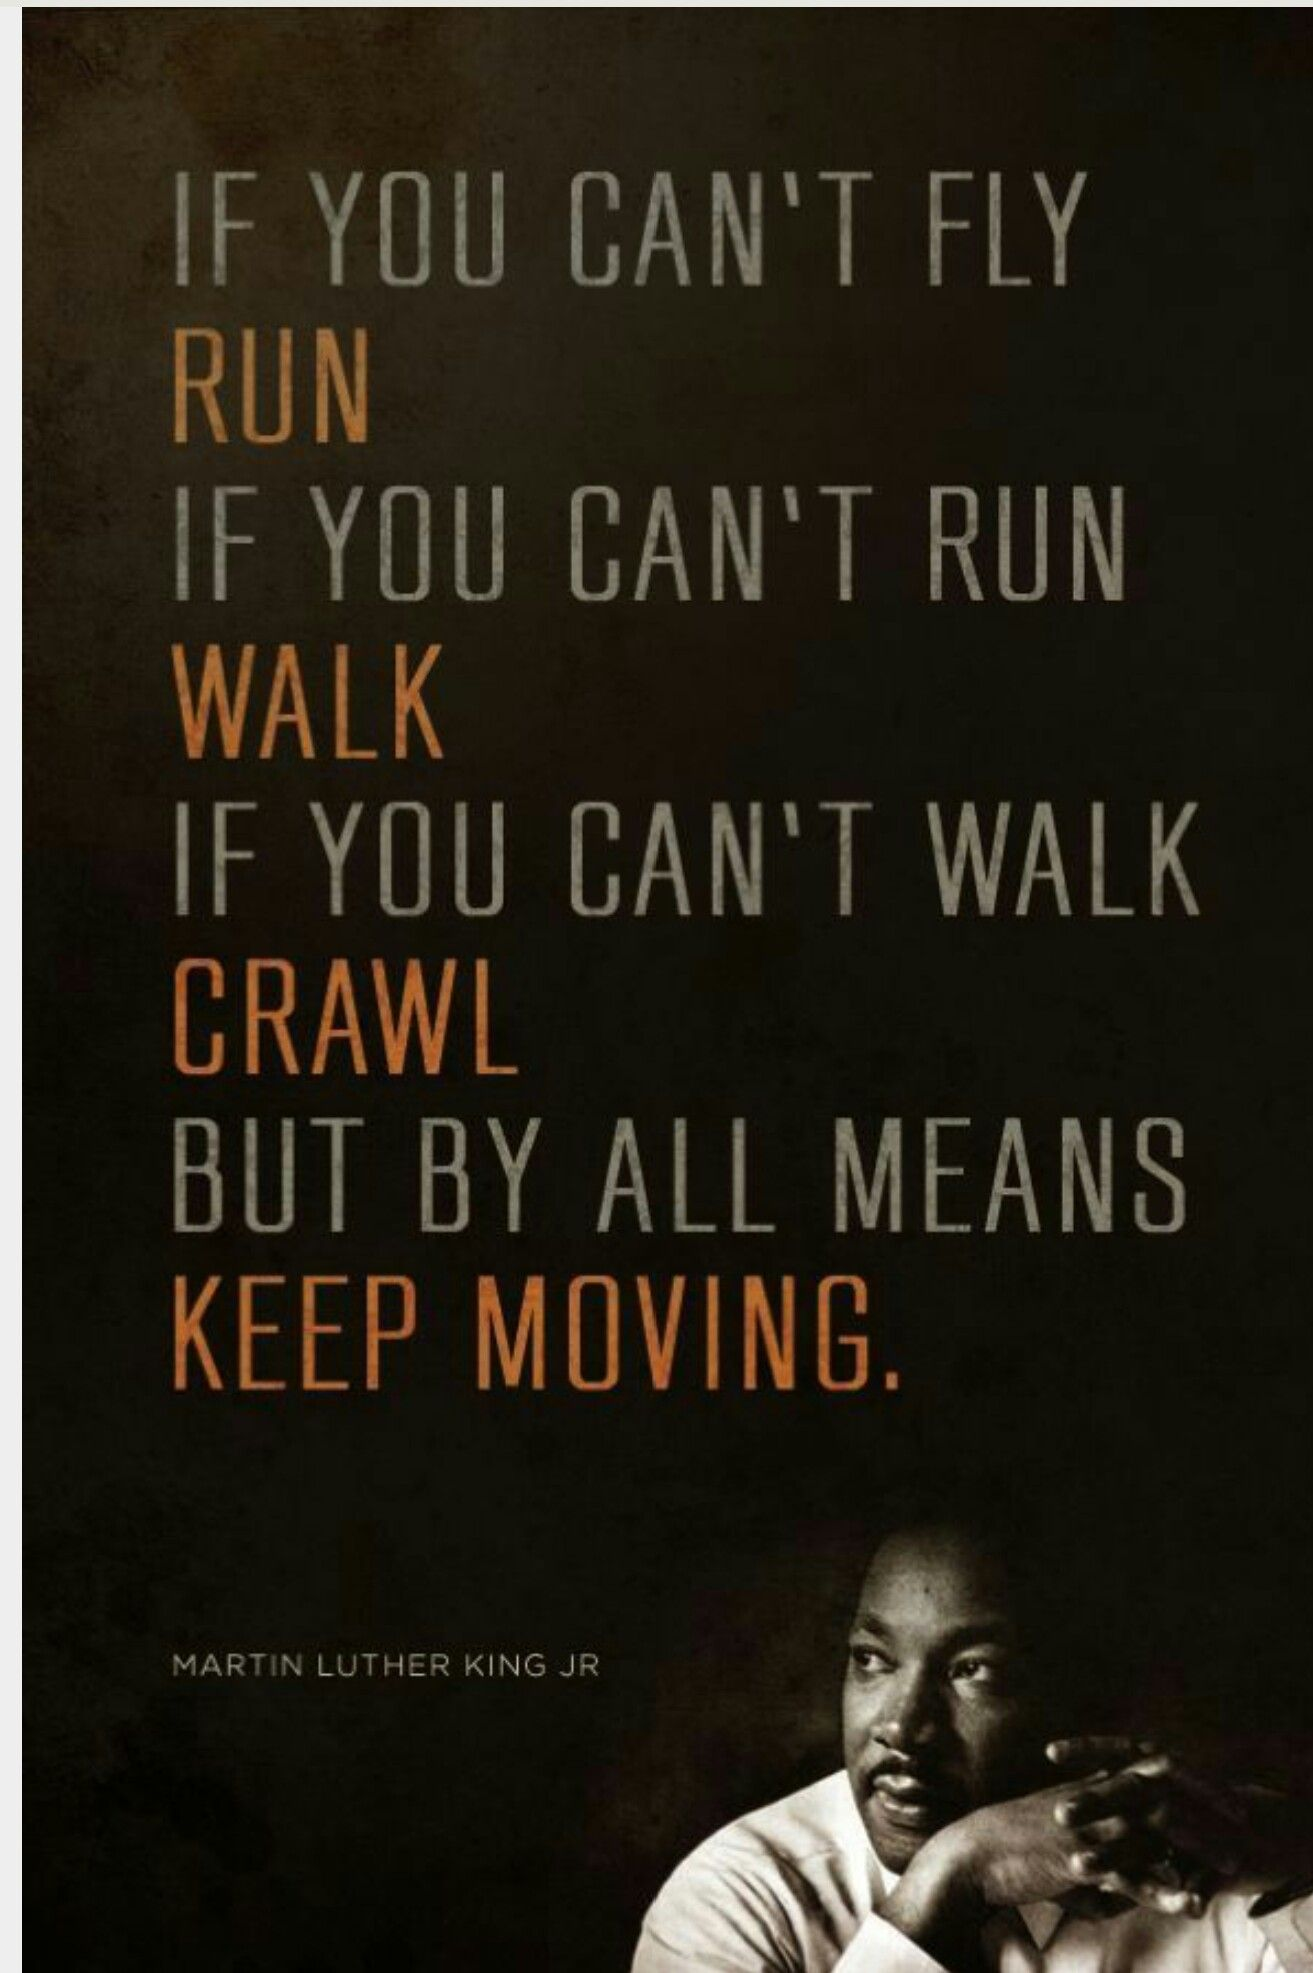 Martin Luther King Love Quotes Pinmaryann Dingle On Keep Moving  Pinterest  Famous Quotes